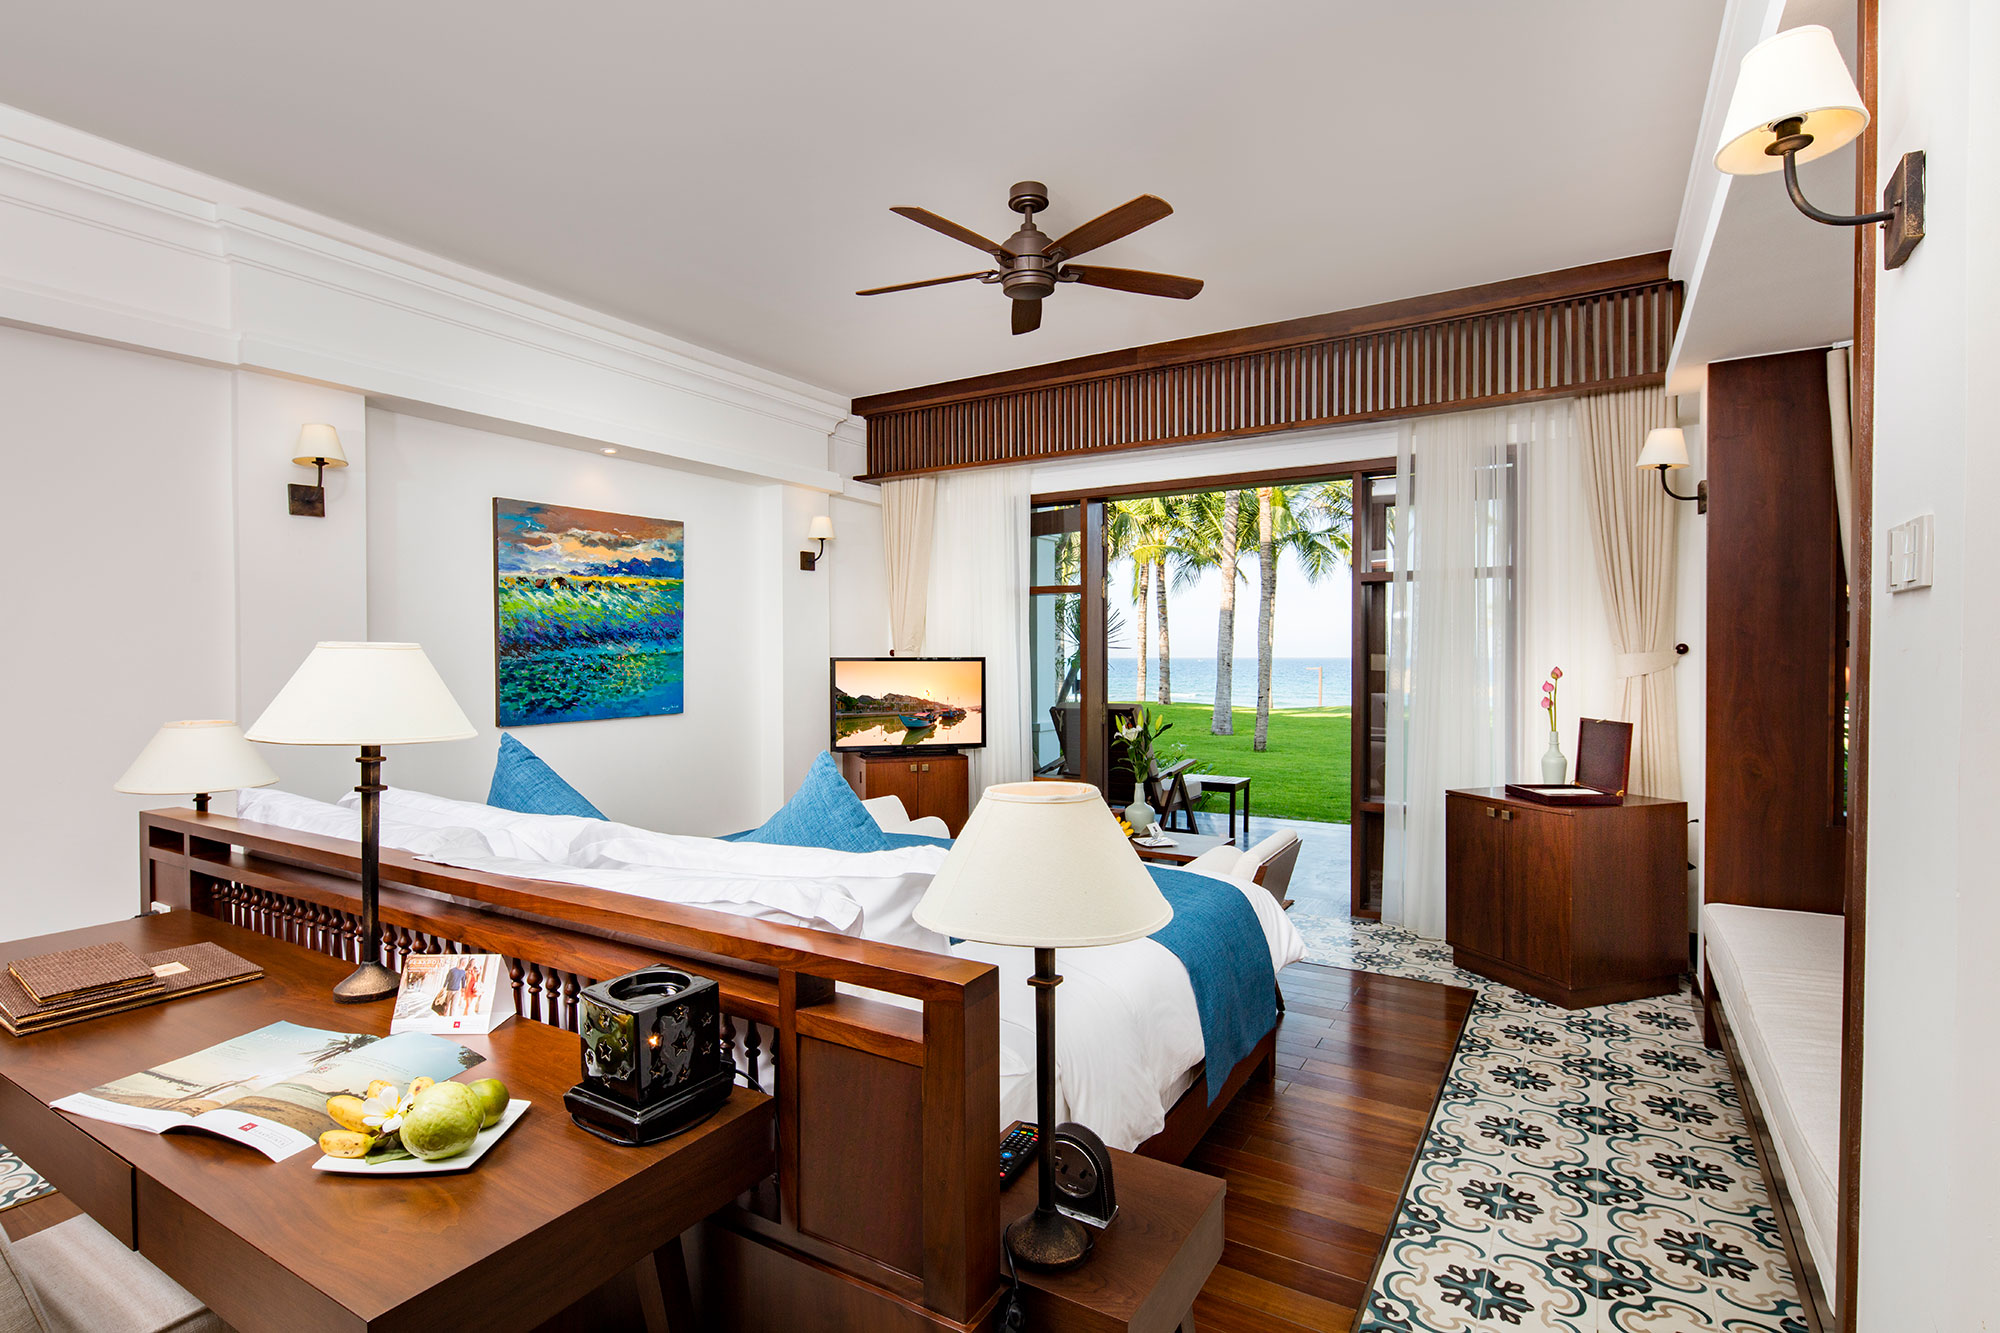 Ocean Front Premium Rooms - The expansive Ocean Front Premium Rooms are set right on The Anam's golden beach front and offer stunning views of the turquoise sea beyond from the private balcony or terrace.